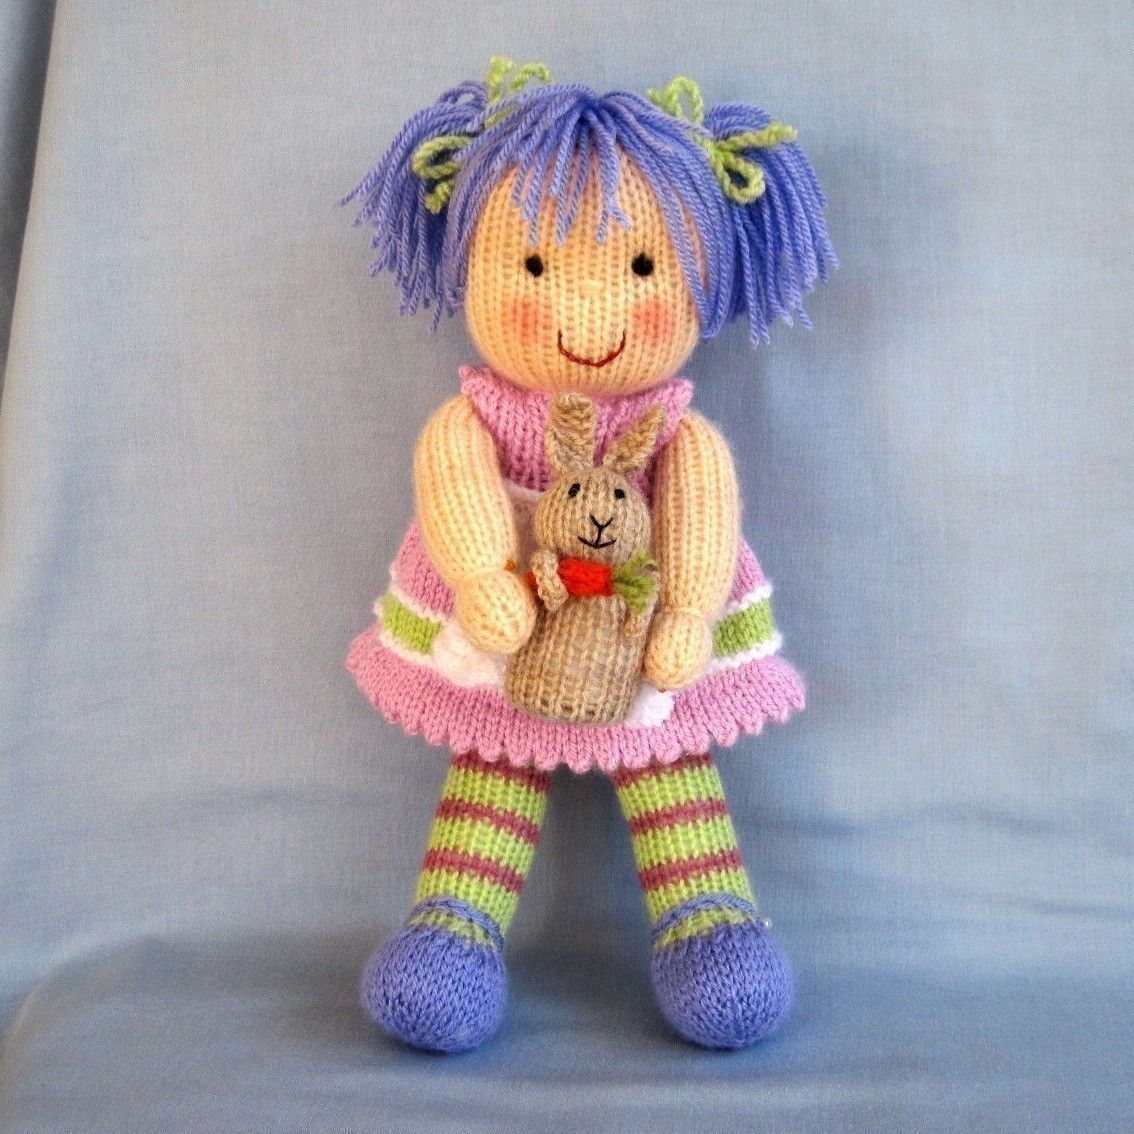 Lucy lavender and bunny knitting pattern pdf instant download lucy lavender and her rabbit knitted toy doll pdf email knitting pattern 495 bankloansurffo Image collections